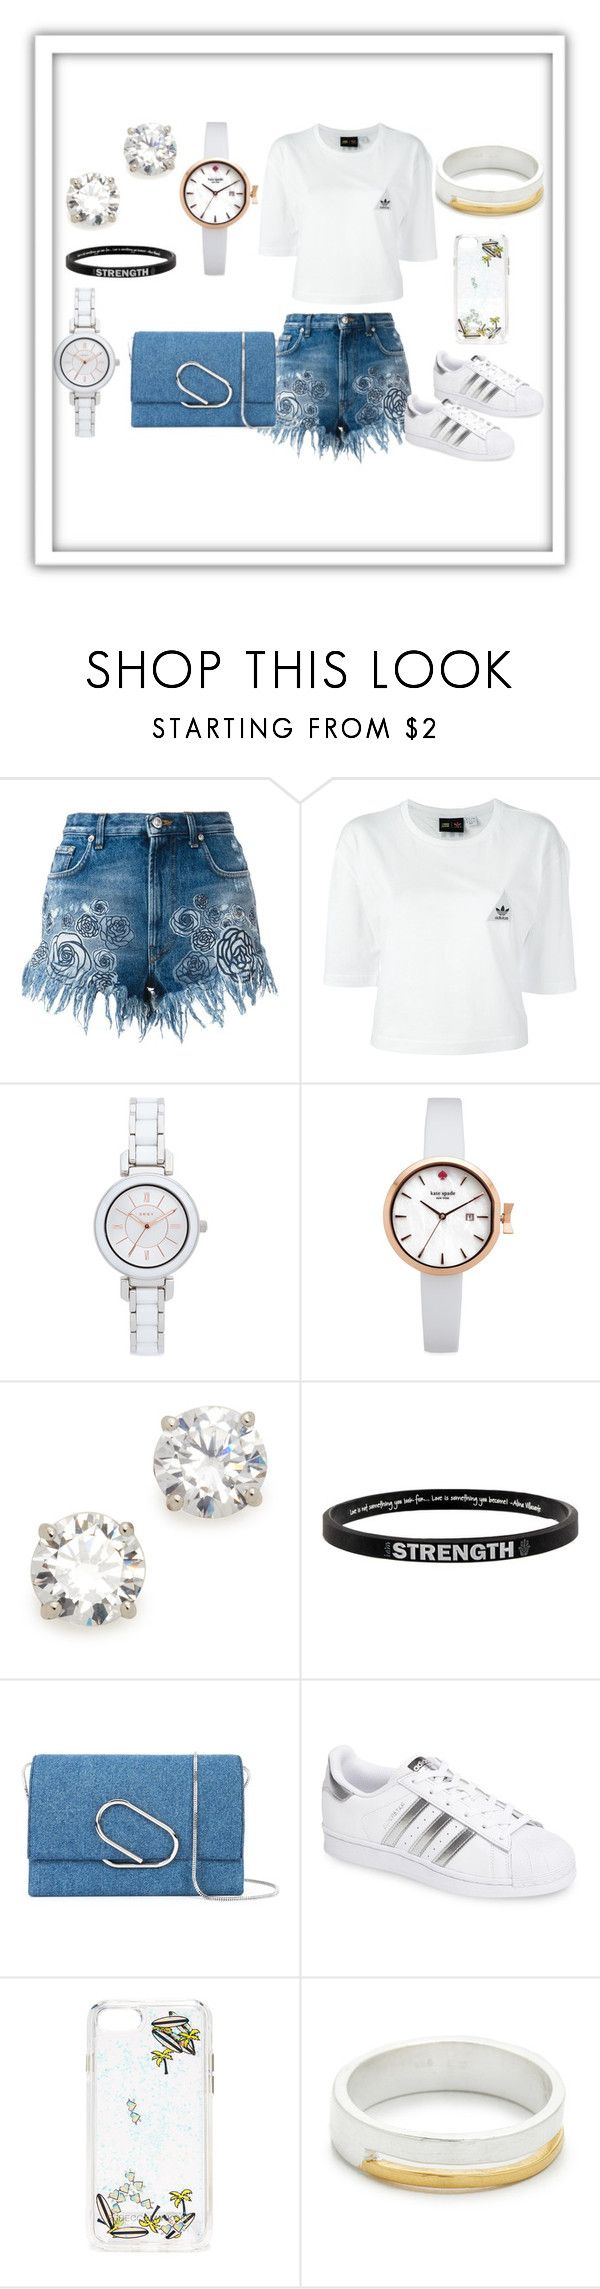 """Denim"" by paige-brrian ❤ liked on Polyvore featuring Versus, adidas, DKNY, Kate Spade, Kenneth Jay Lane, Peace Love World, 3.1 Phillip Lim, Rebecca Minkoff and Maya Magal"